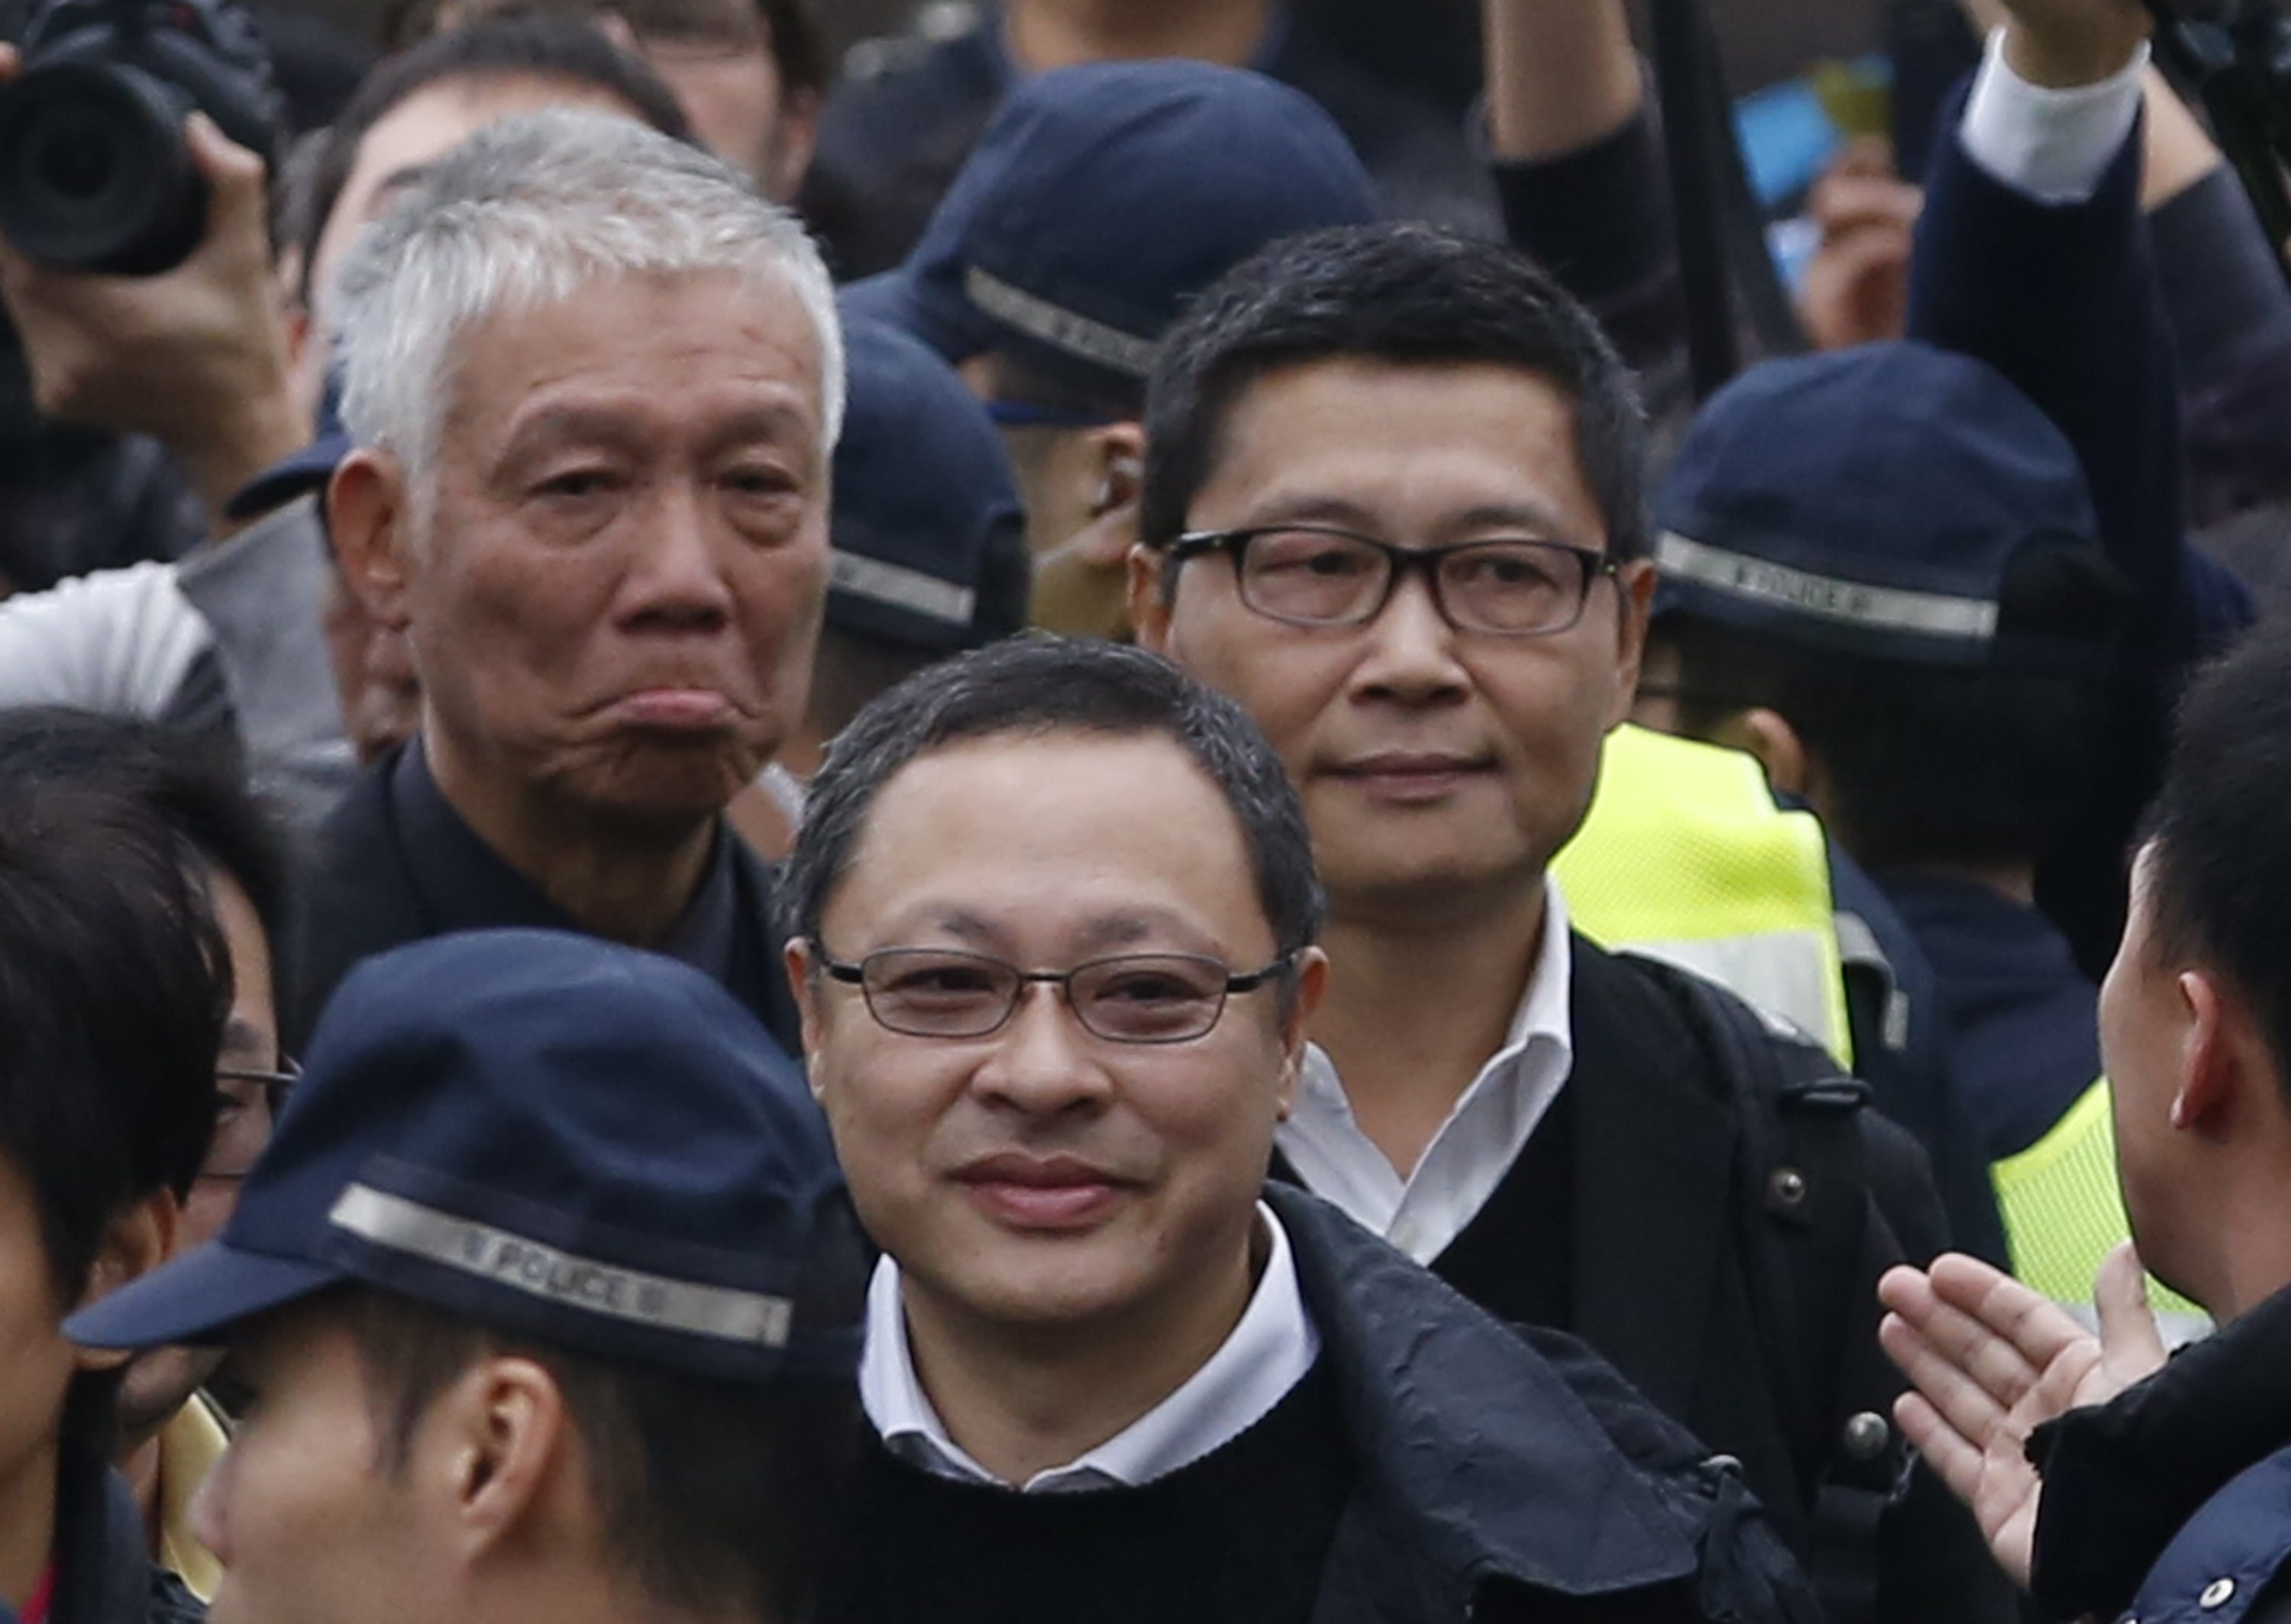 Three protest leaders, from right, Chan Kin-man, Benny Tai and the Rev. Chu Yiu-ming walk toward the police station in Hong Kong on Dec. 3, 2014, to surrender to police